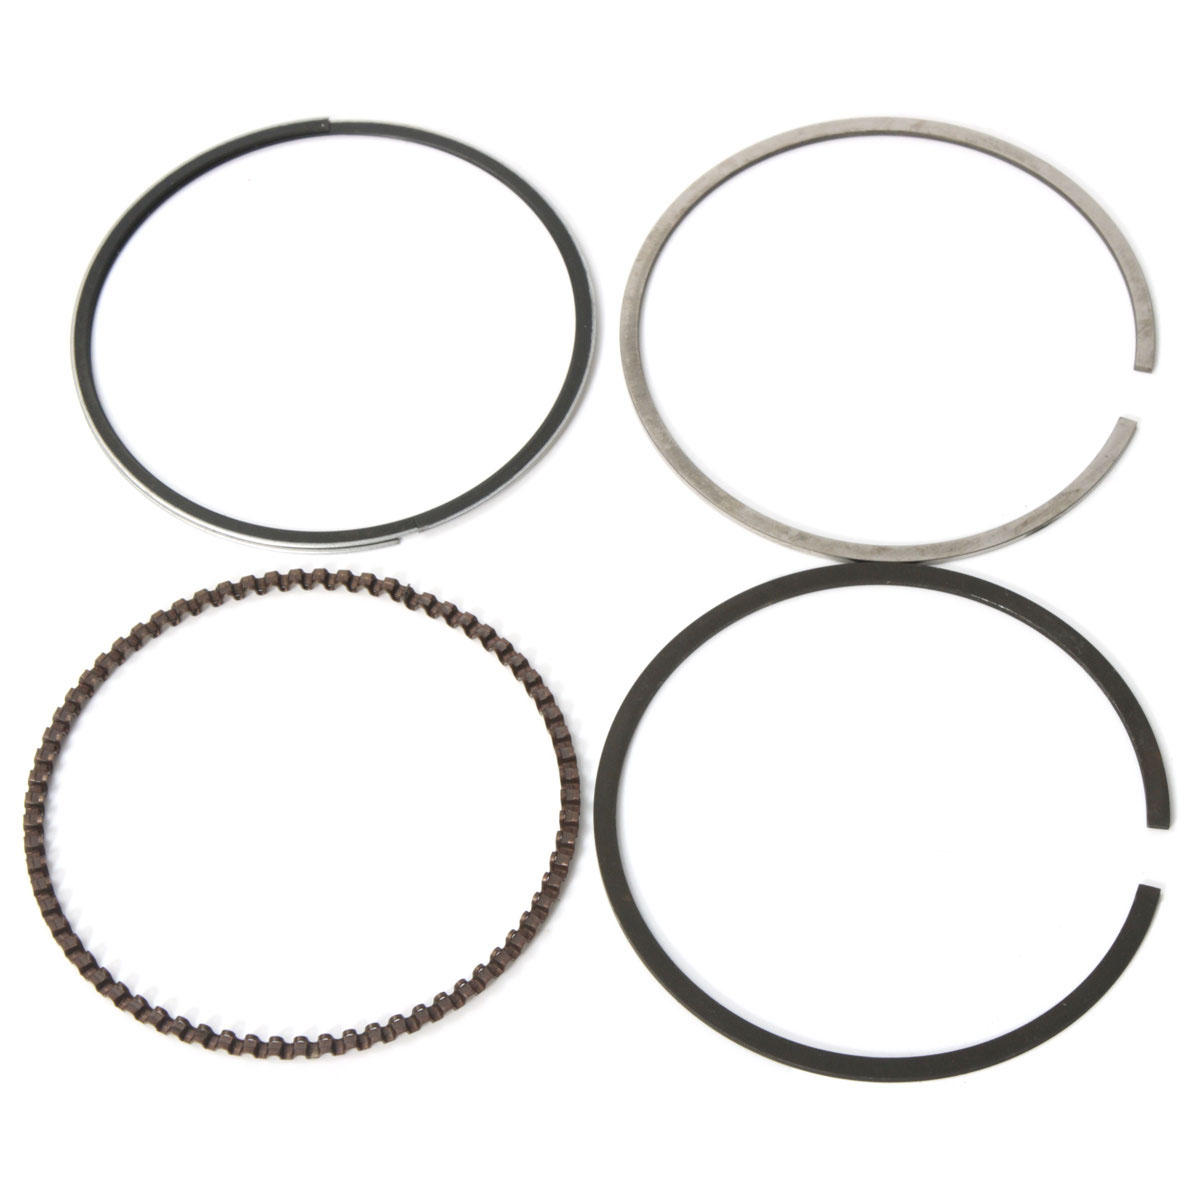 57mm Bore Cylinder Engine Rebuild Kit For 150cc Gy6